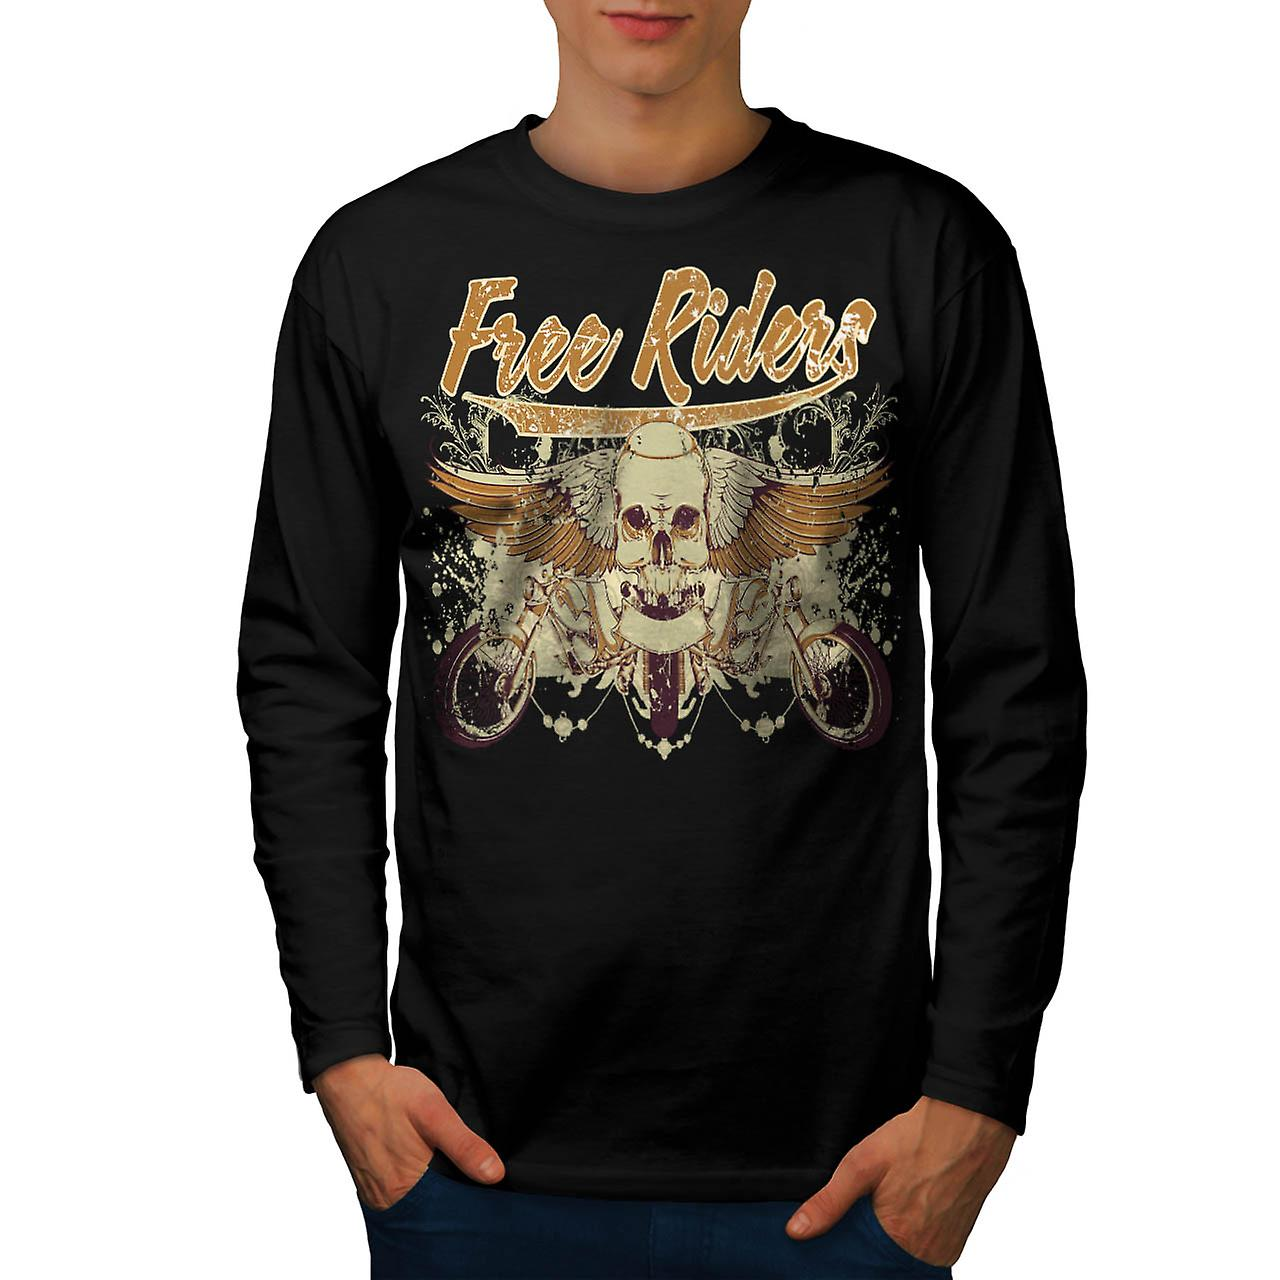 Free Rider Bike Gang Biker Life Men Black Long Sleeve T-shirt | Wellcoda